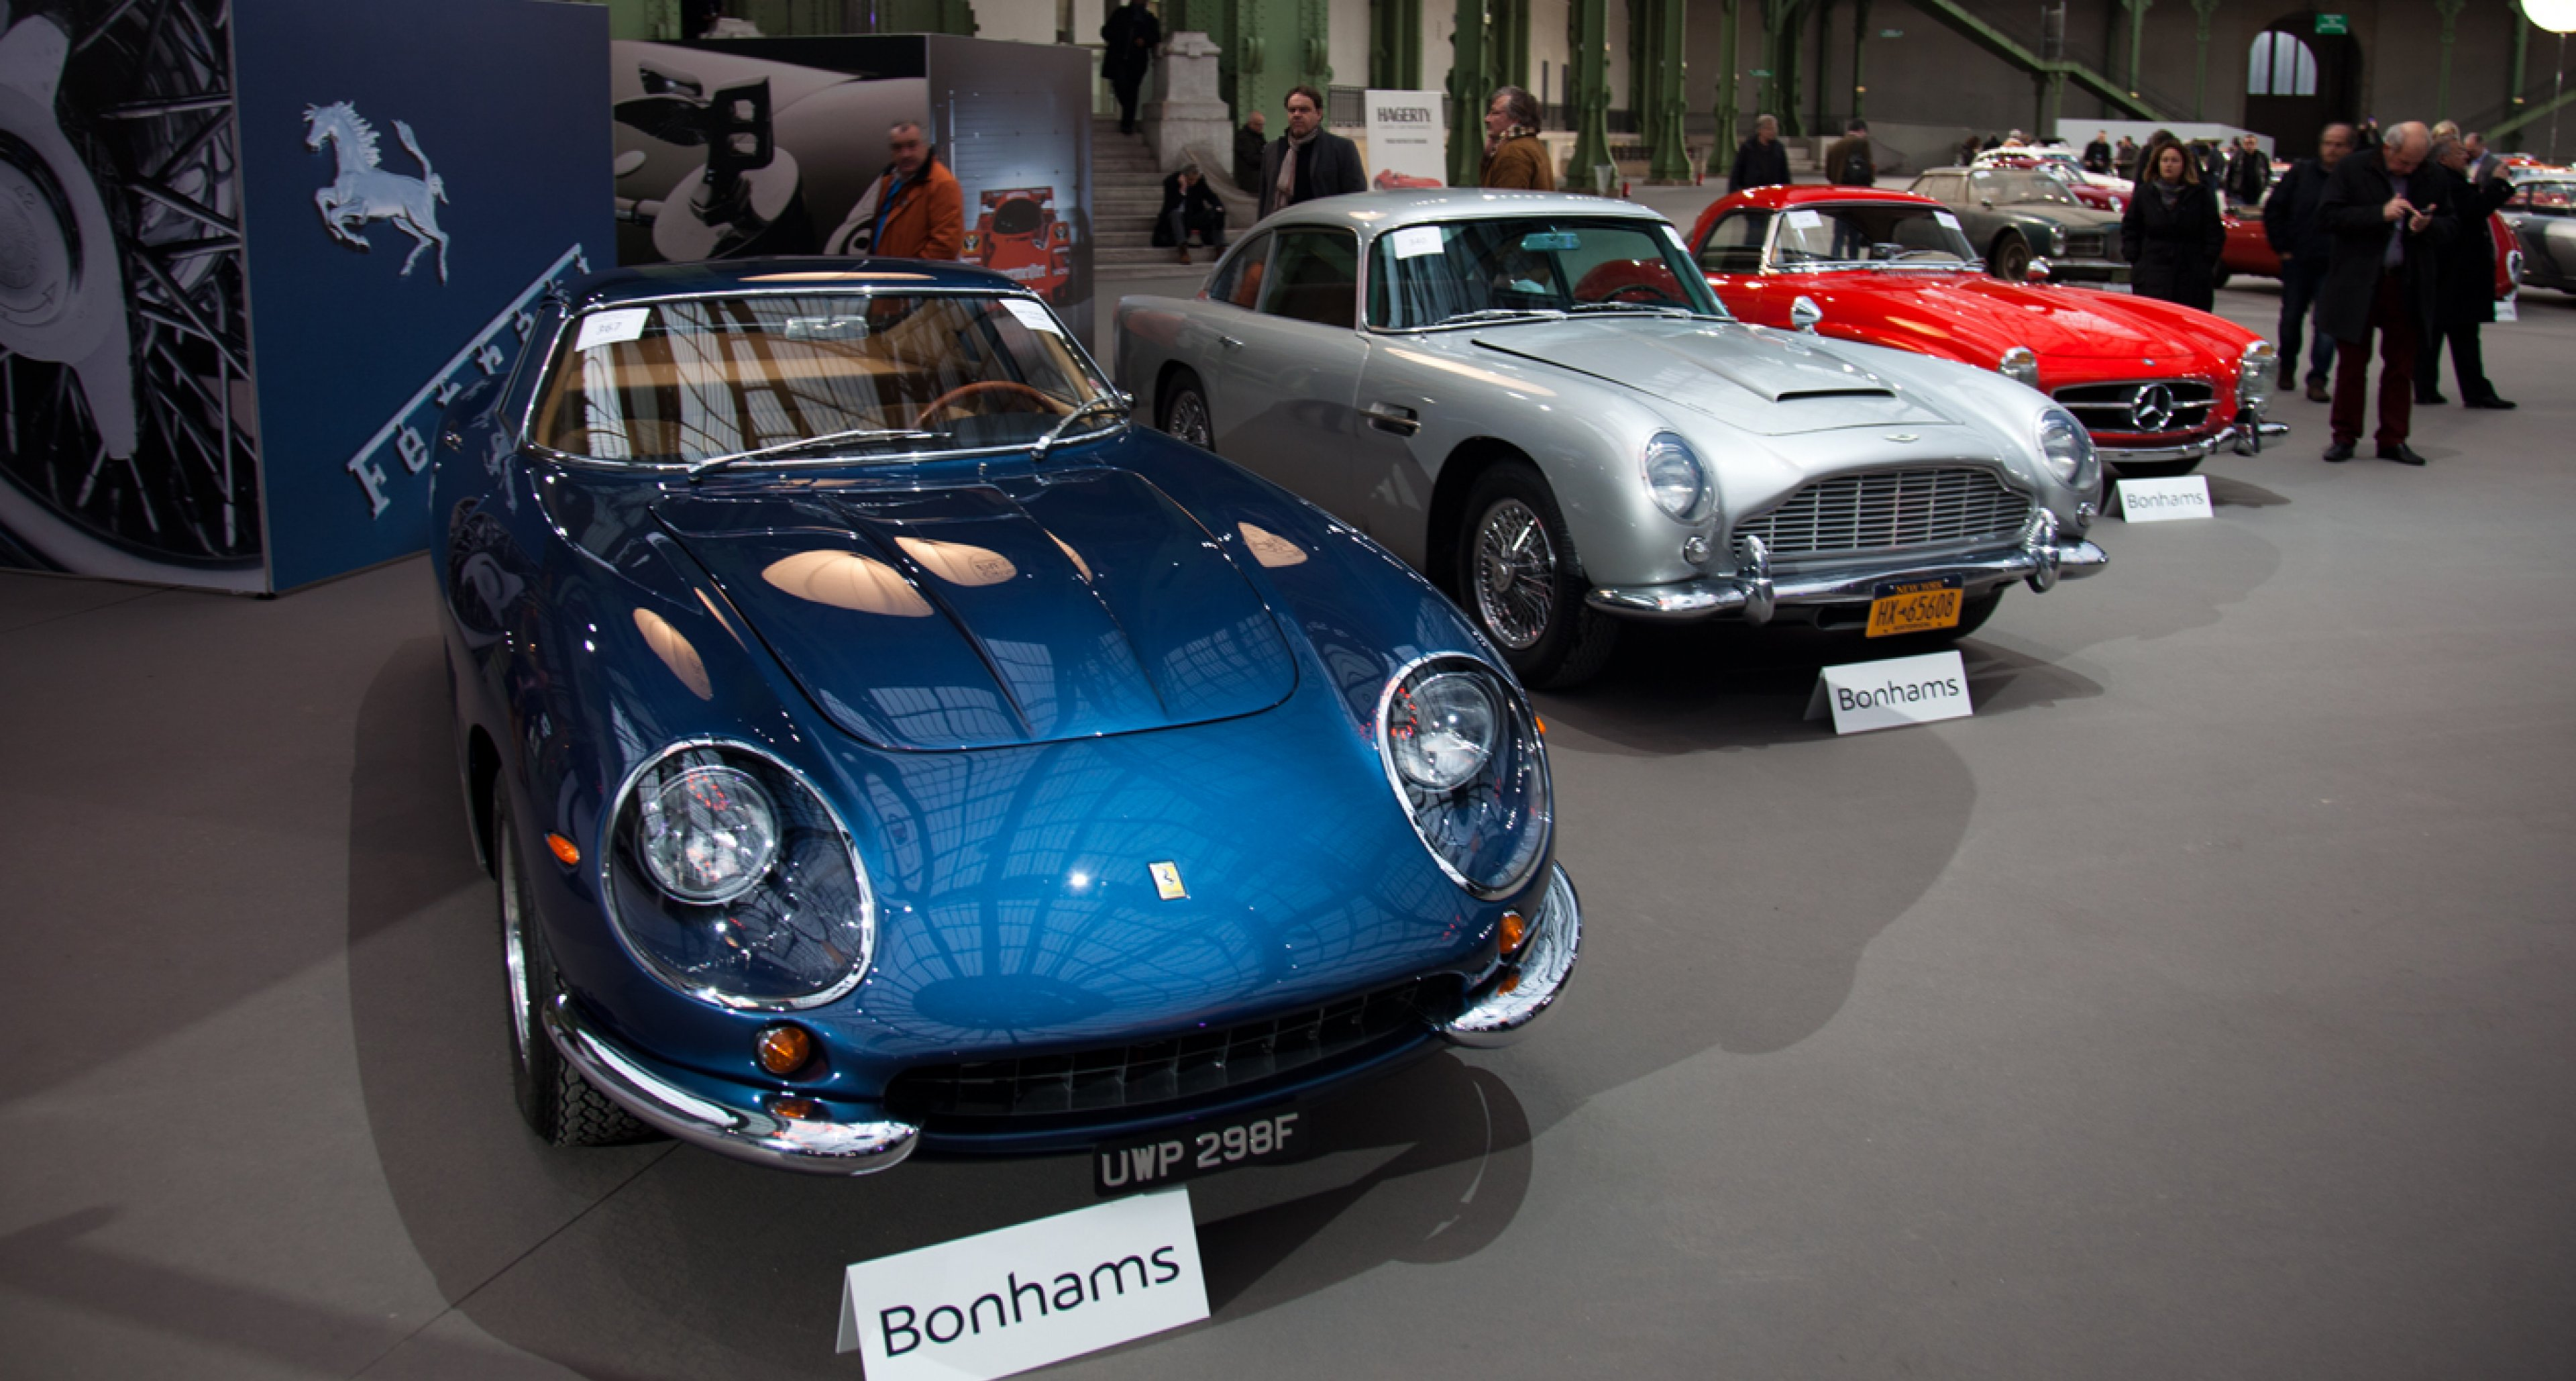 Million dollar beauties at Bonhams' Retromobile sale 2014 at Grand Palais, Paris: Ferrari 275GTB/4 (sold for €2,218,333), Aston Martin DB5 (sold for €776,250) and Mercedes 300SL Roadster (sold for € 713.000).